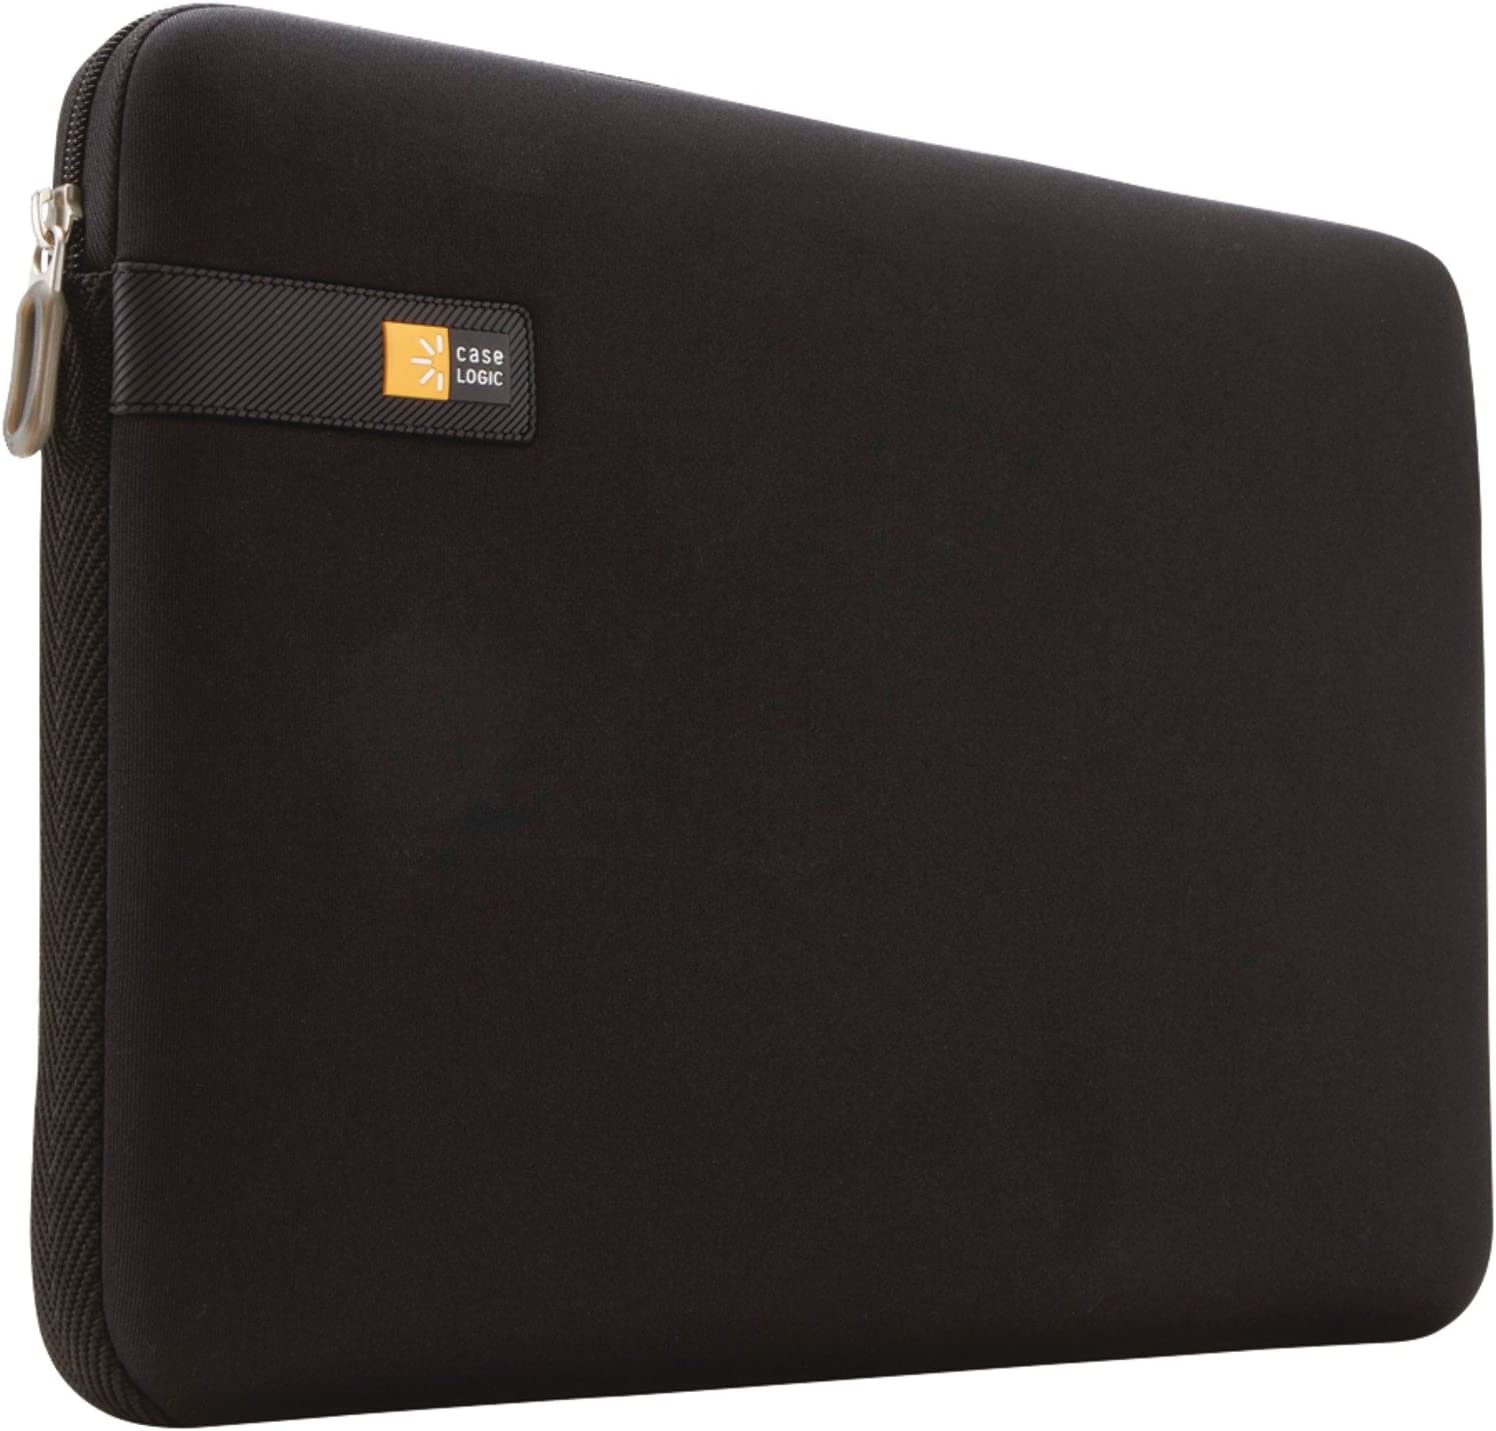 "Case Logic Laptop Sleeve 15-16"", Black"